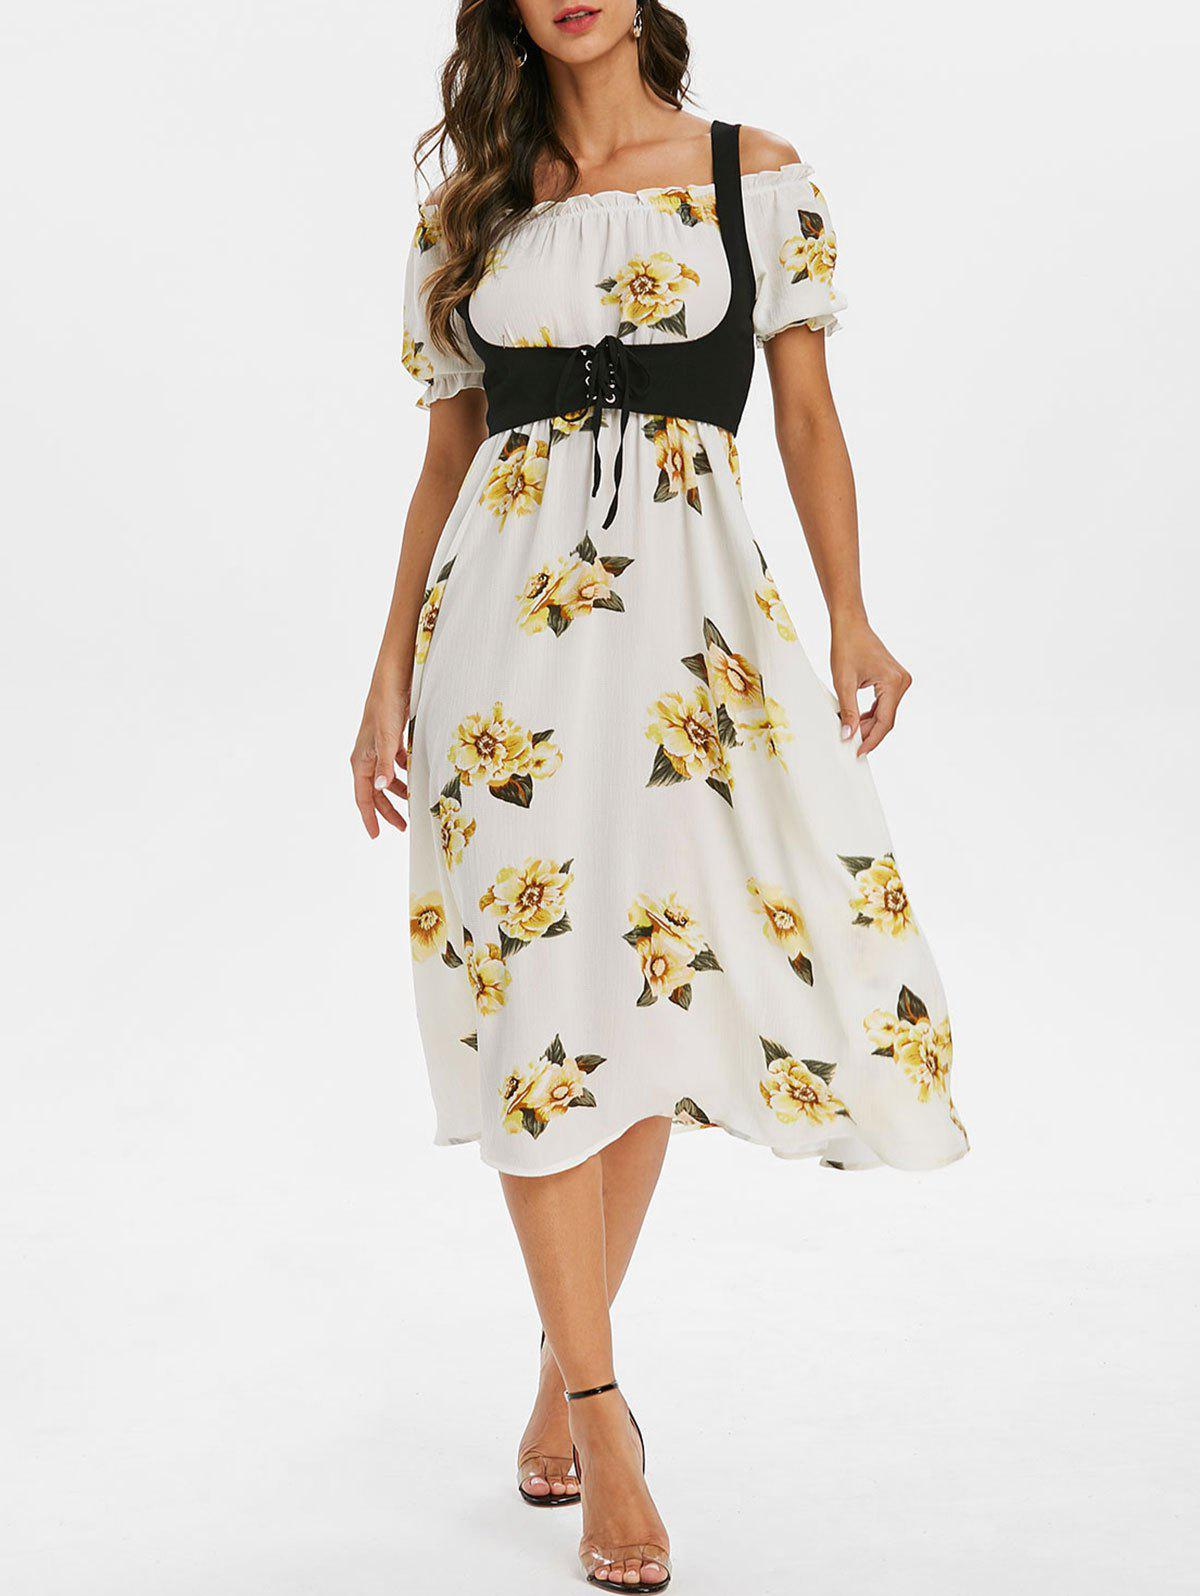 Ditsy Print Off The Shoulder A Line Dress with Solid Top - WARM WHITE L